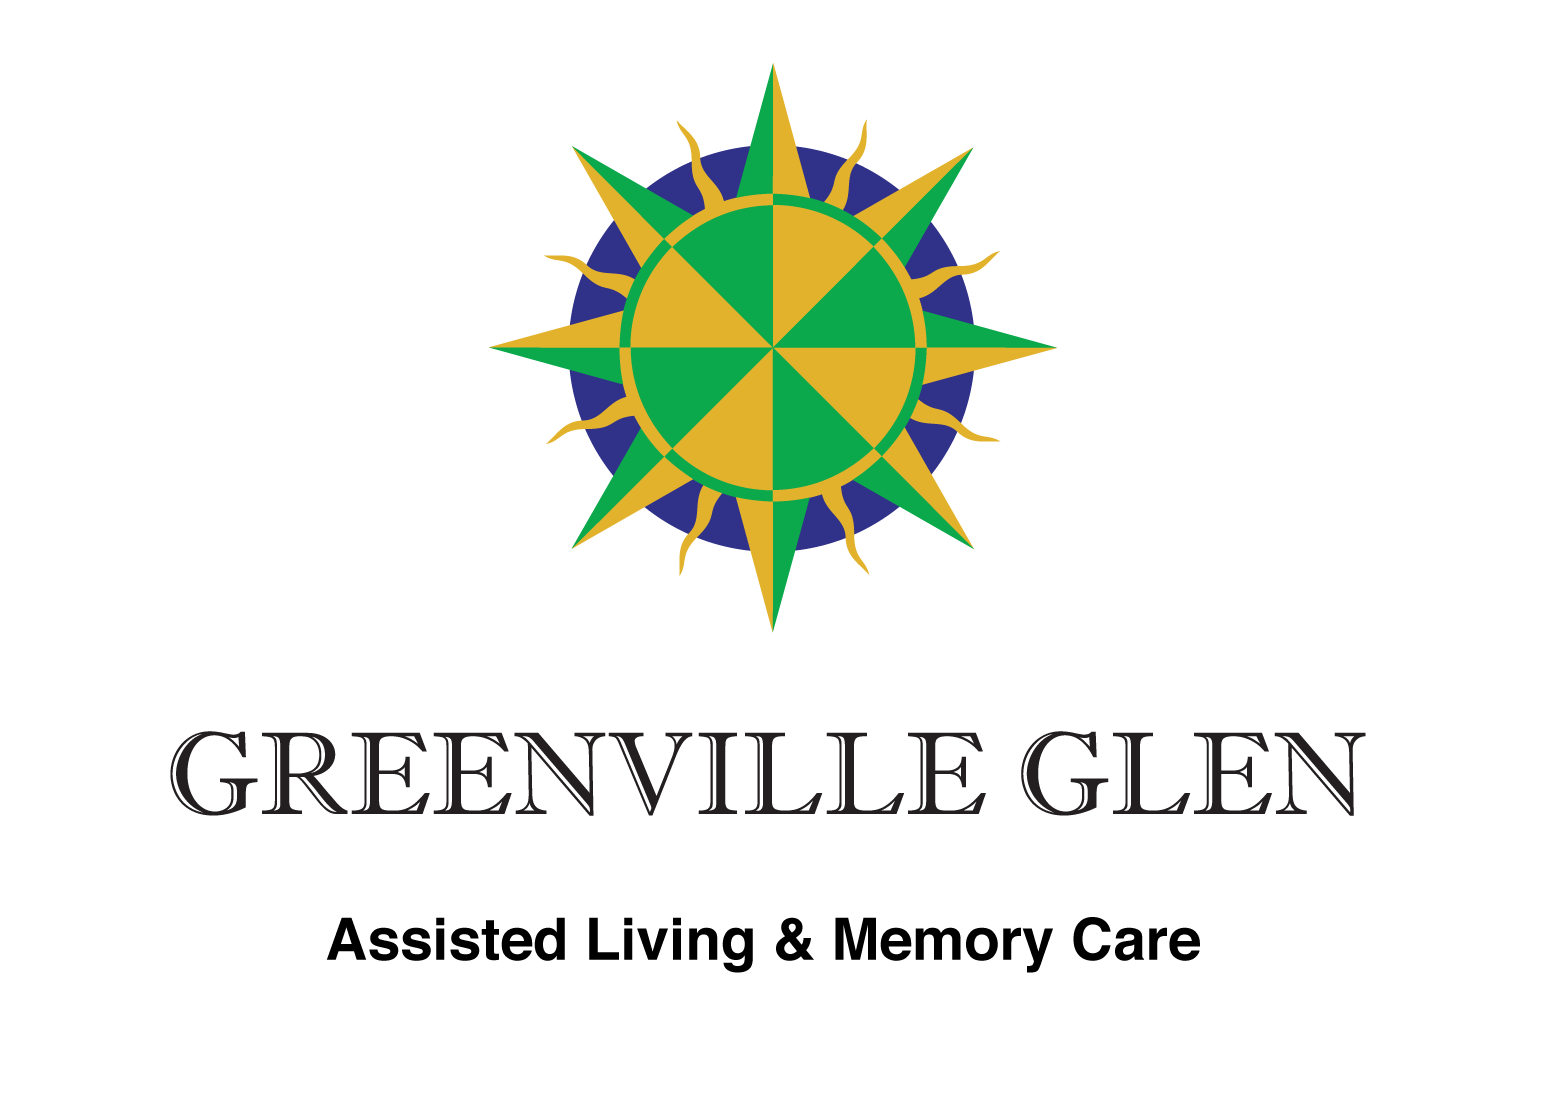 Greenville Glen